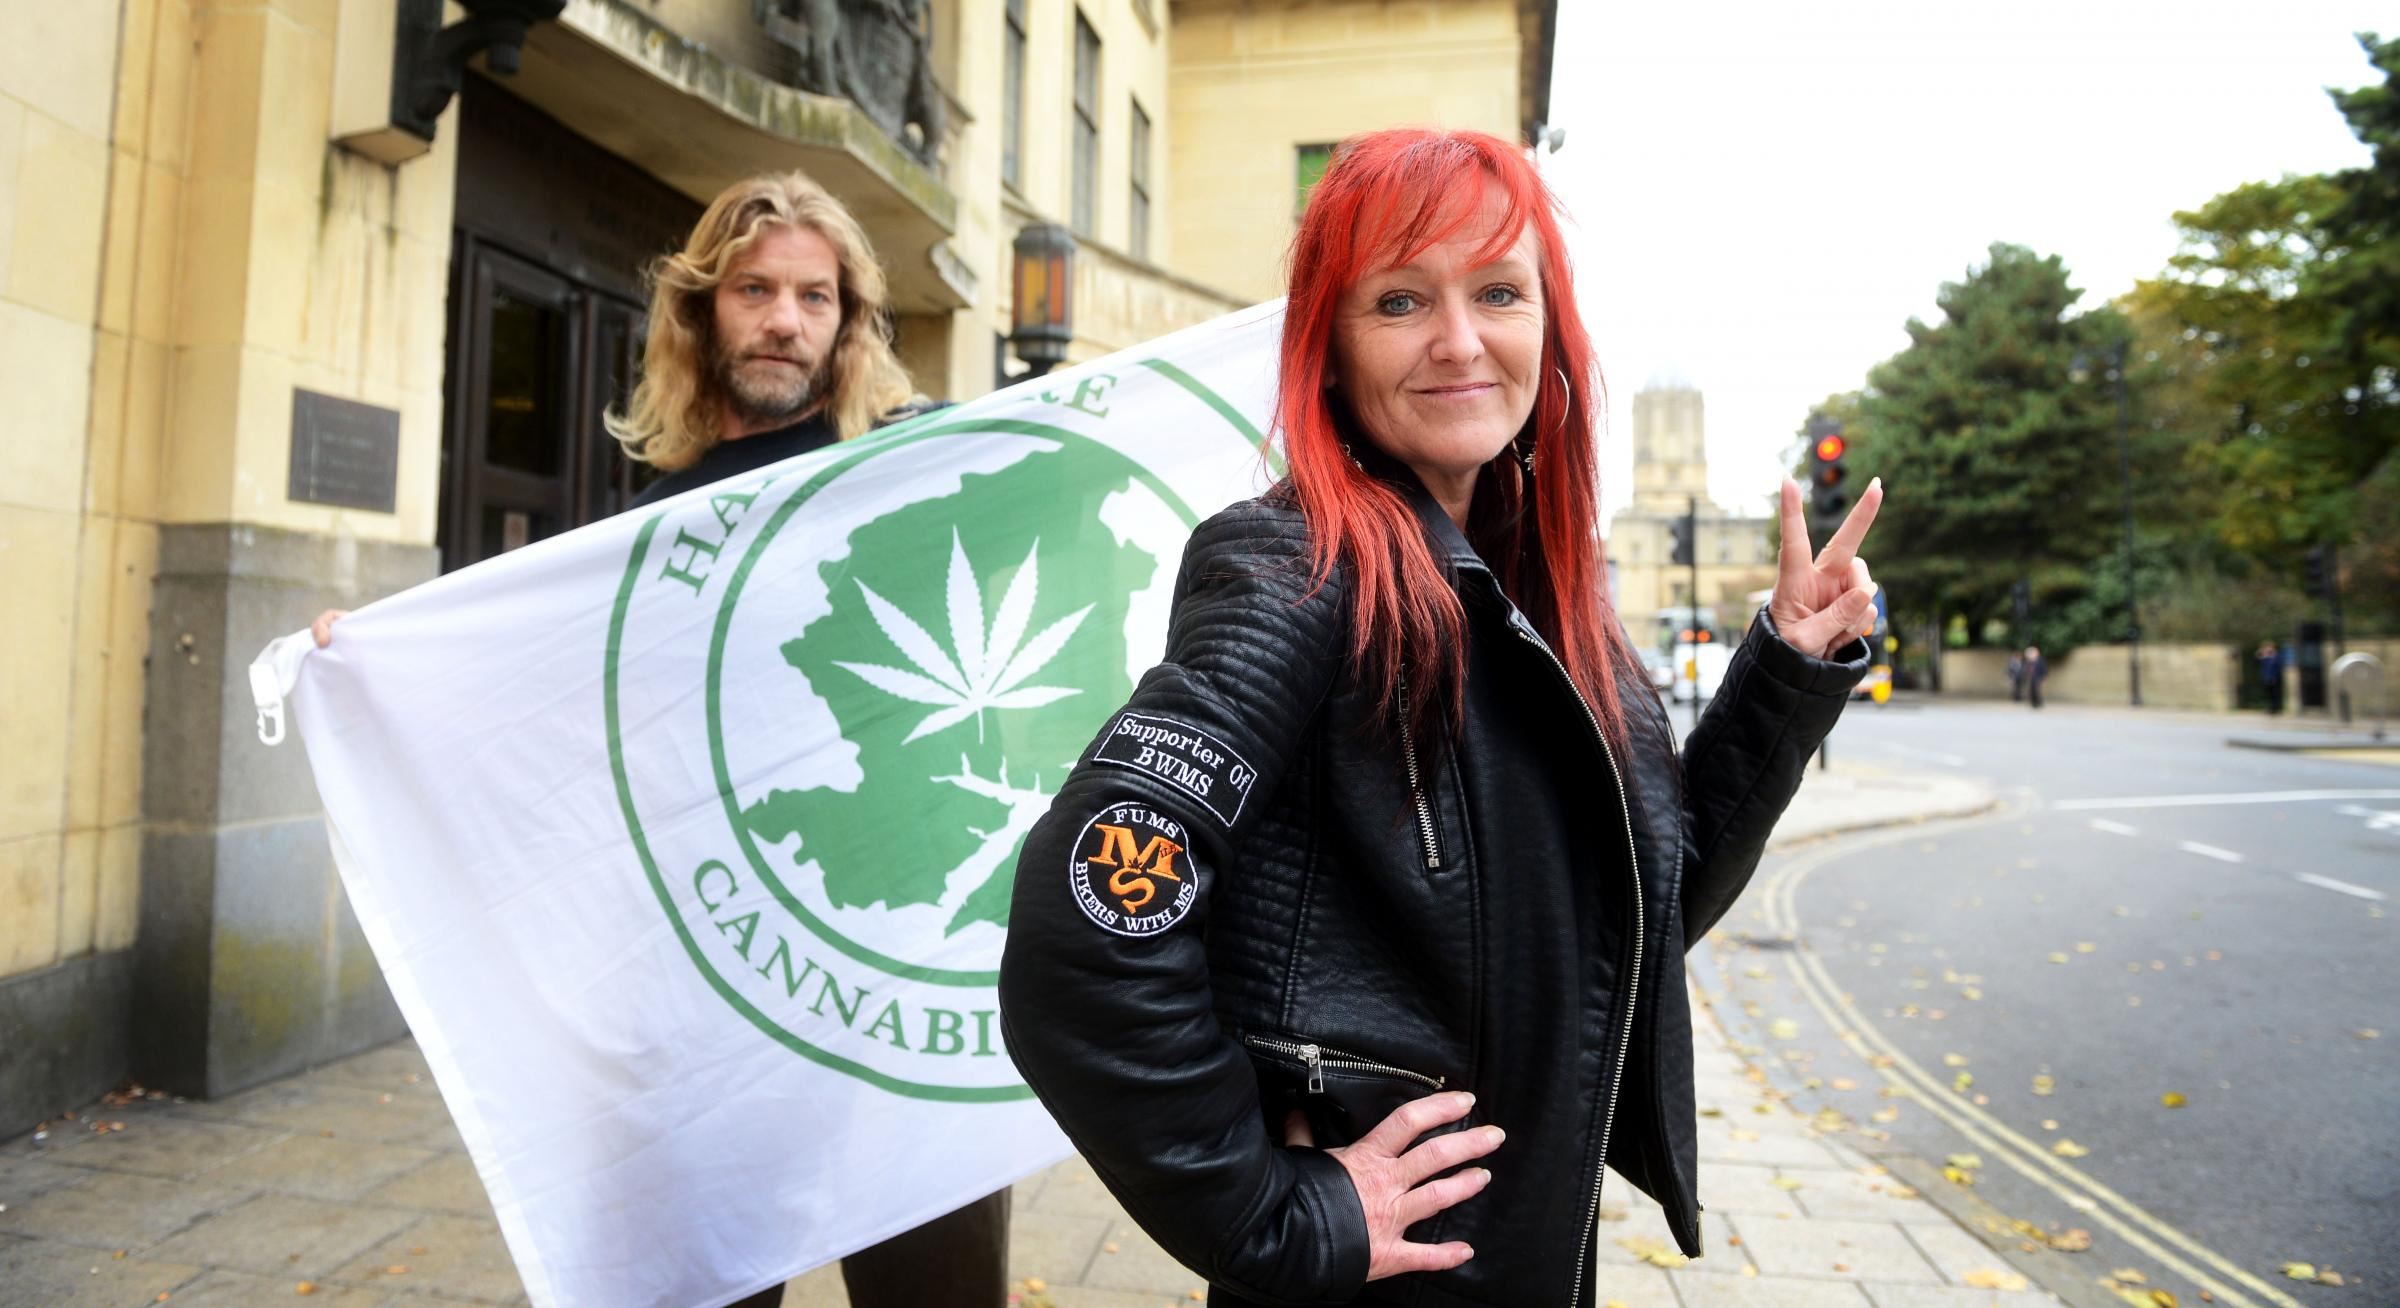 Cannabis campaigner: I'll carry on breaking the law until drug is legalised